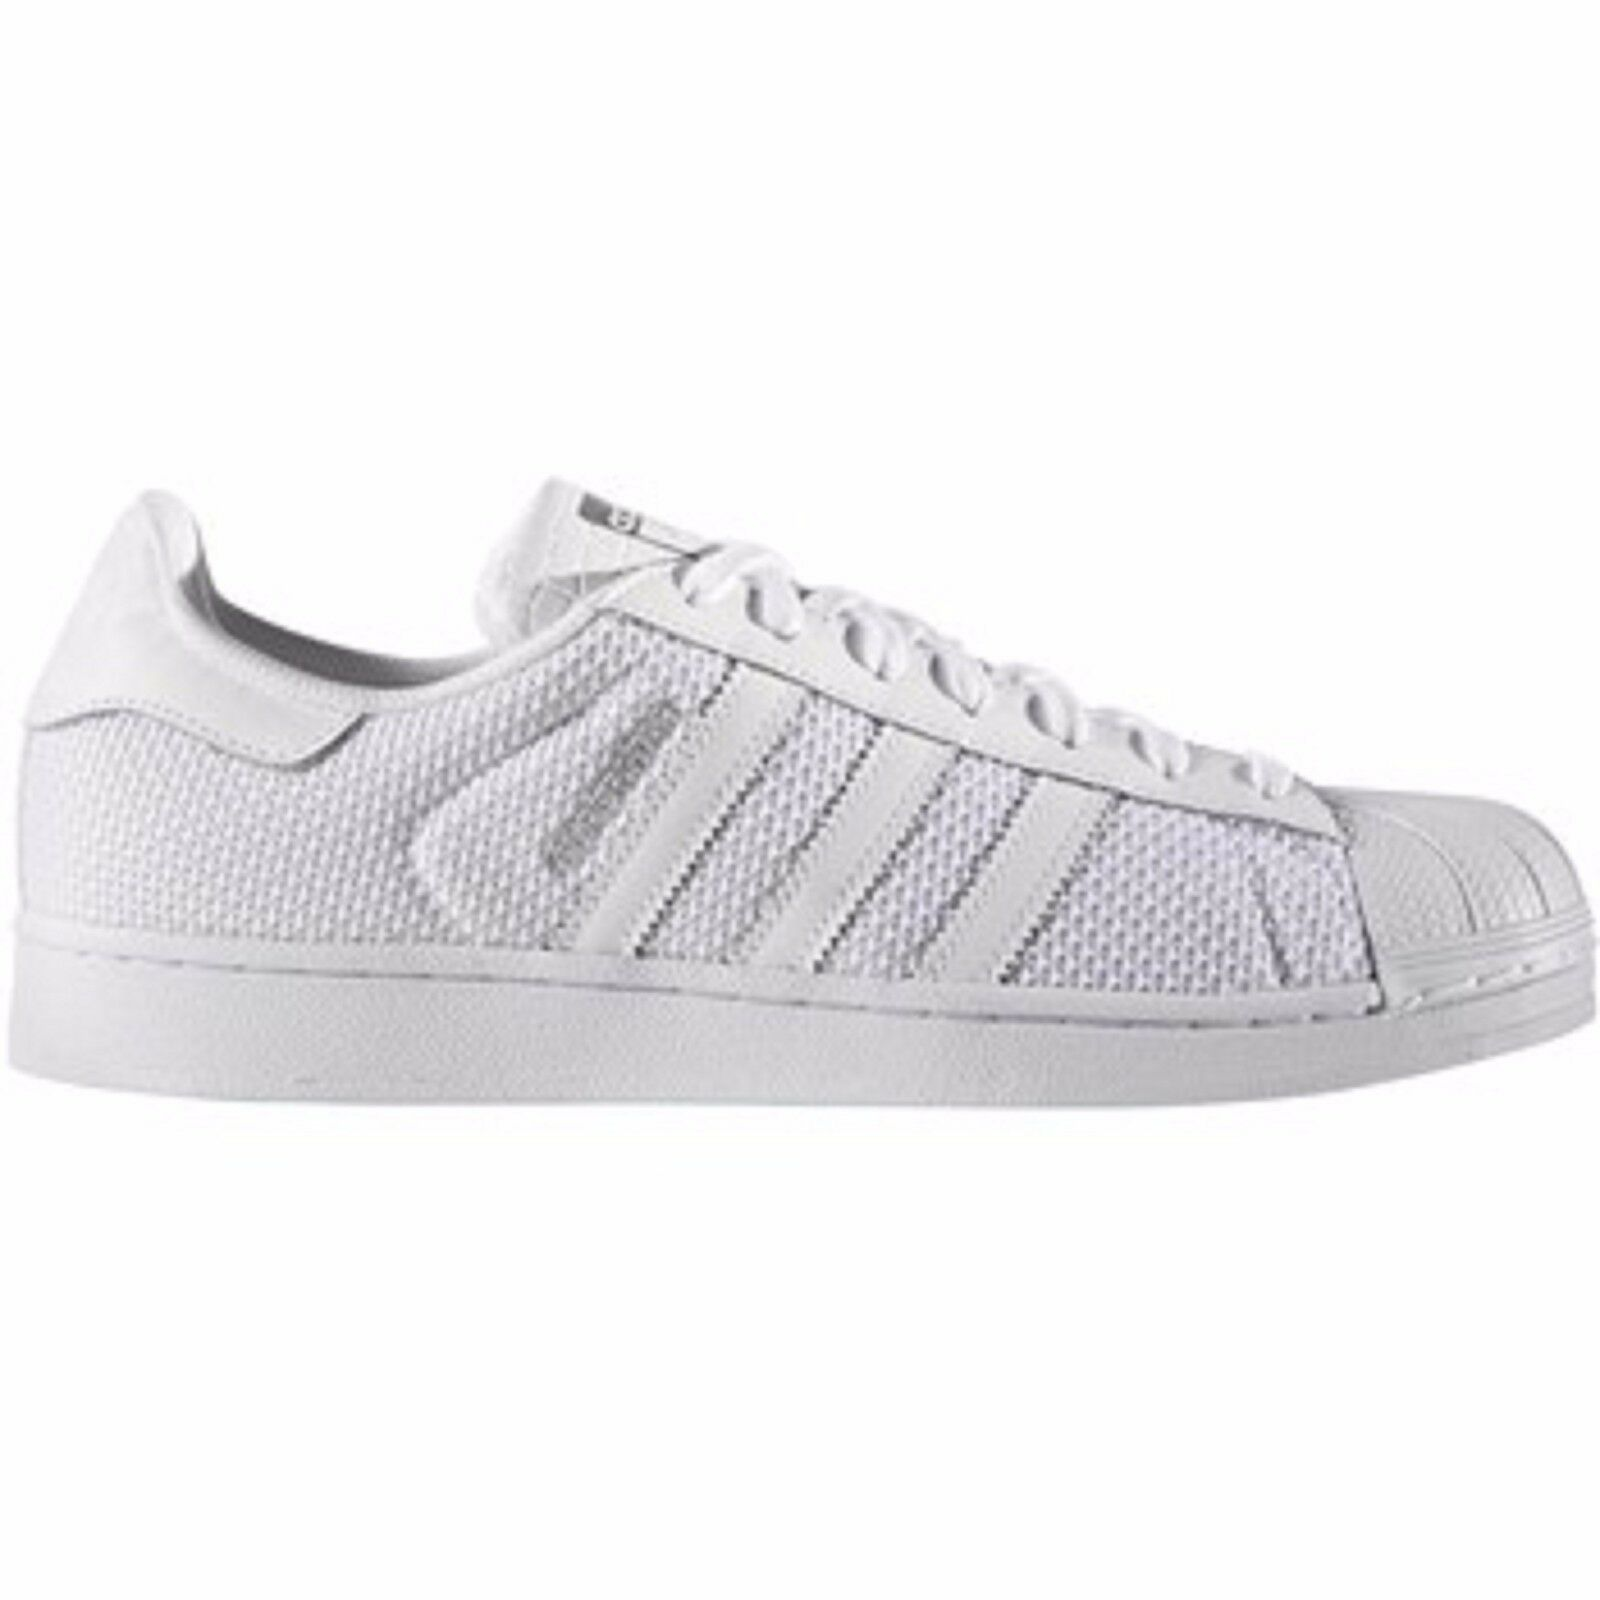 52e1e4554b5  S75962  Mens Adidas Originals Superstar Breathable Knit Triple White  NEW   well-